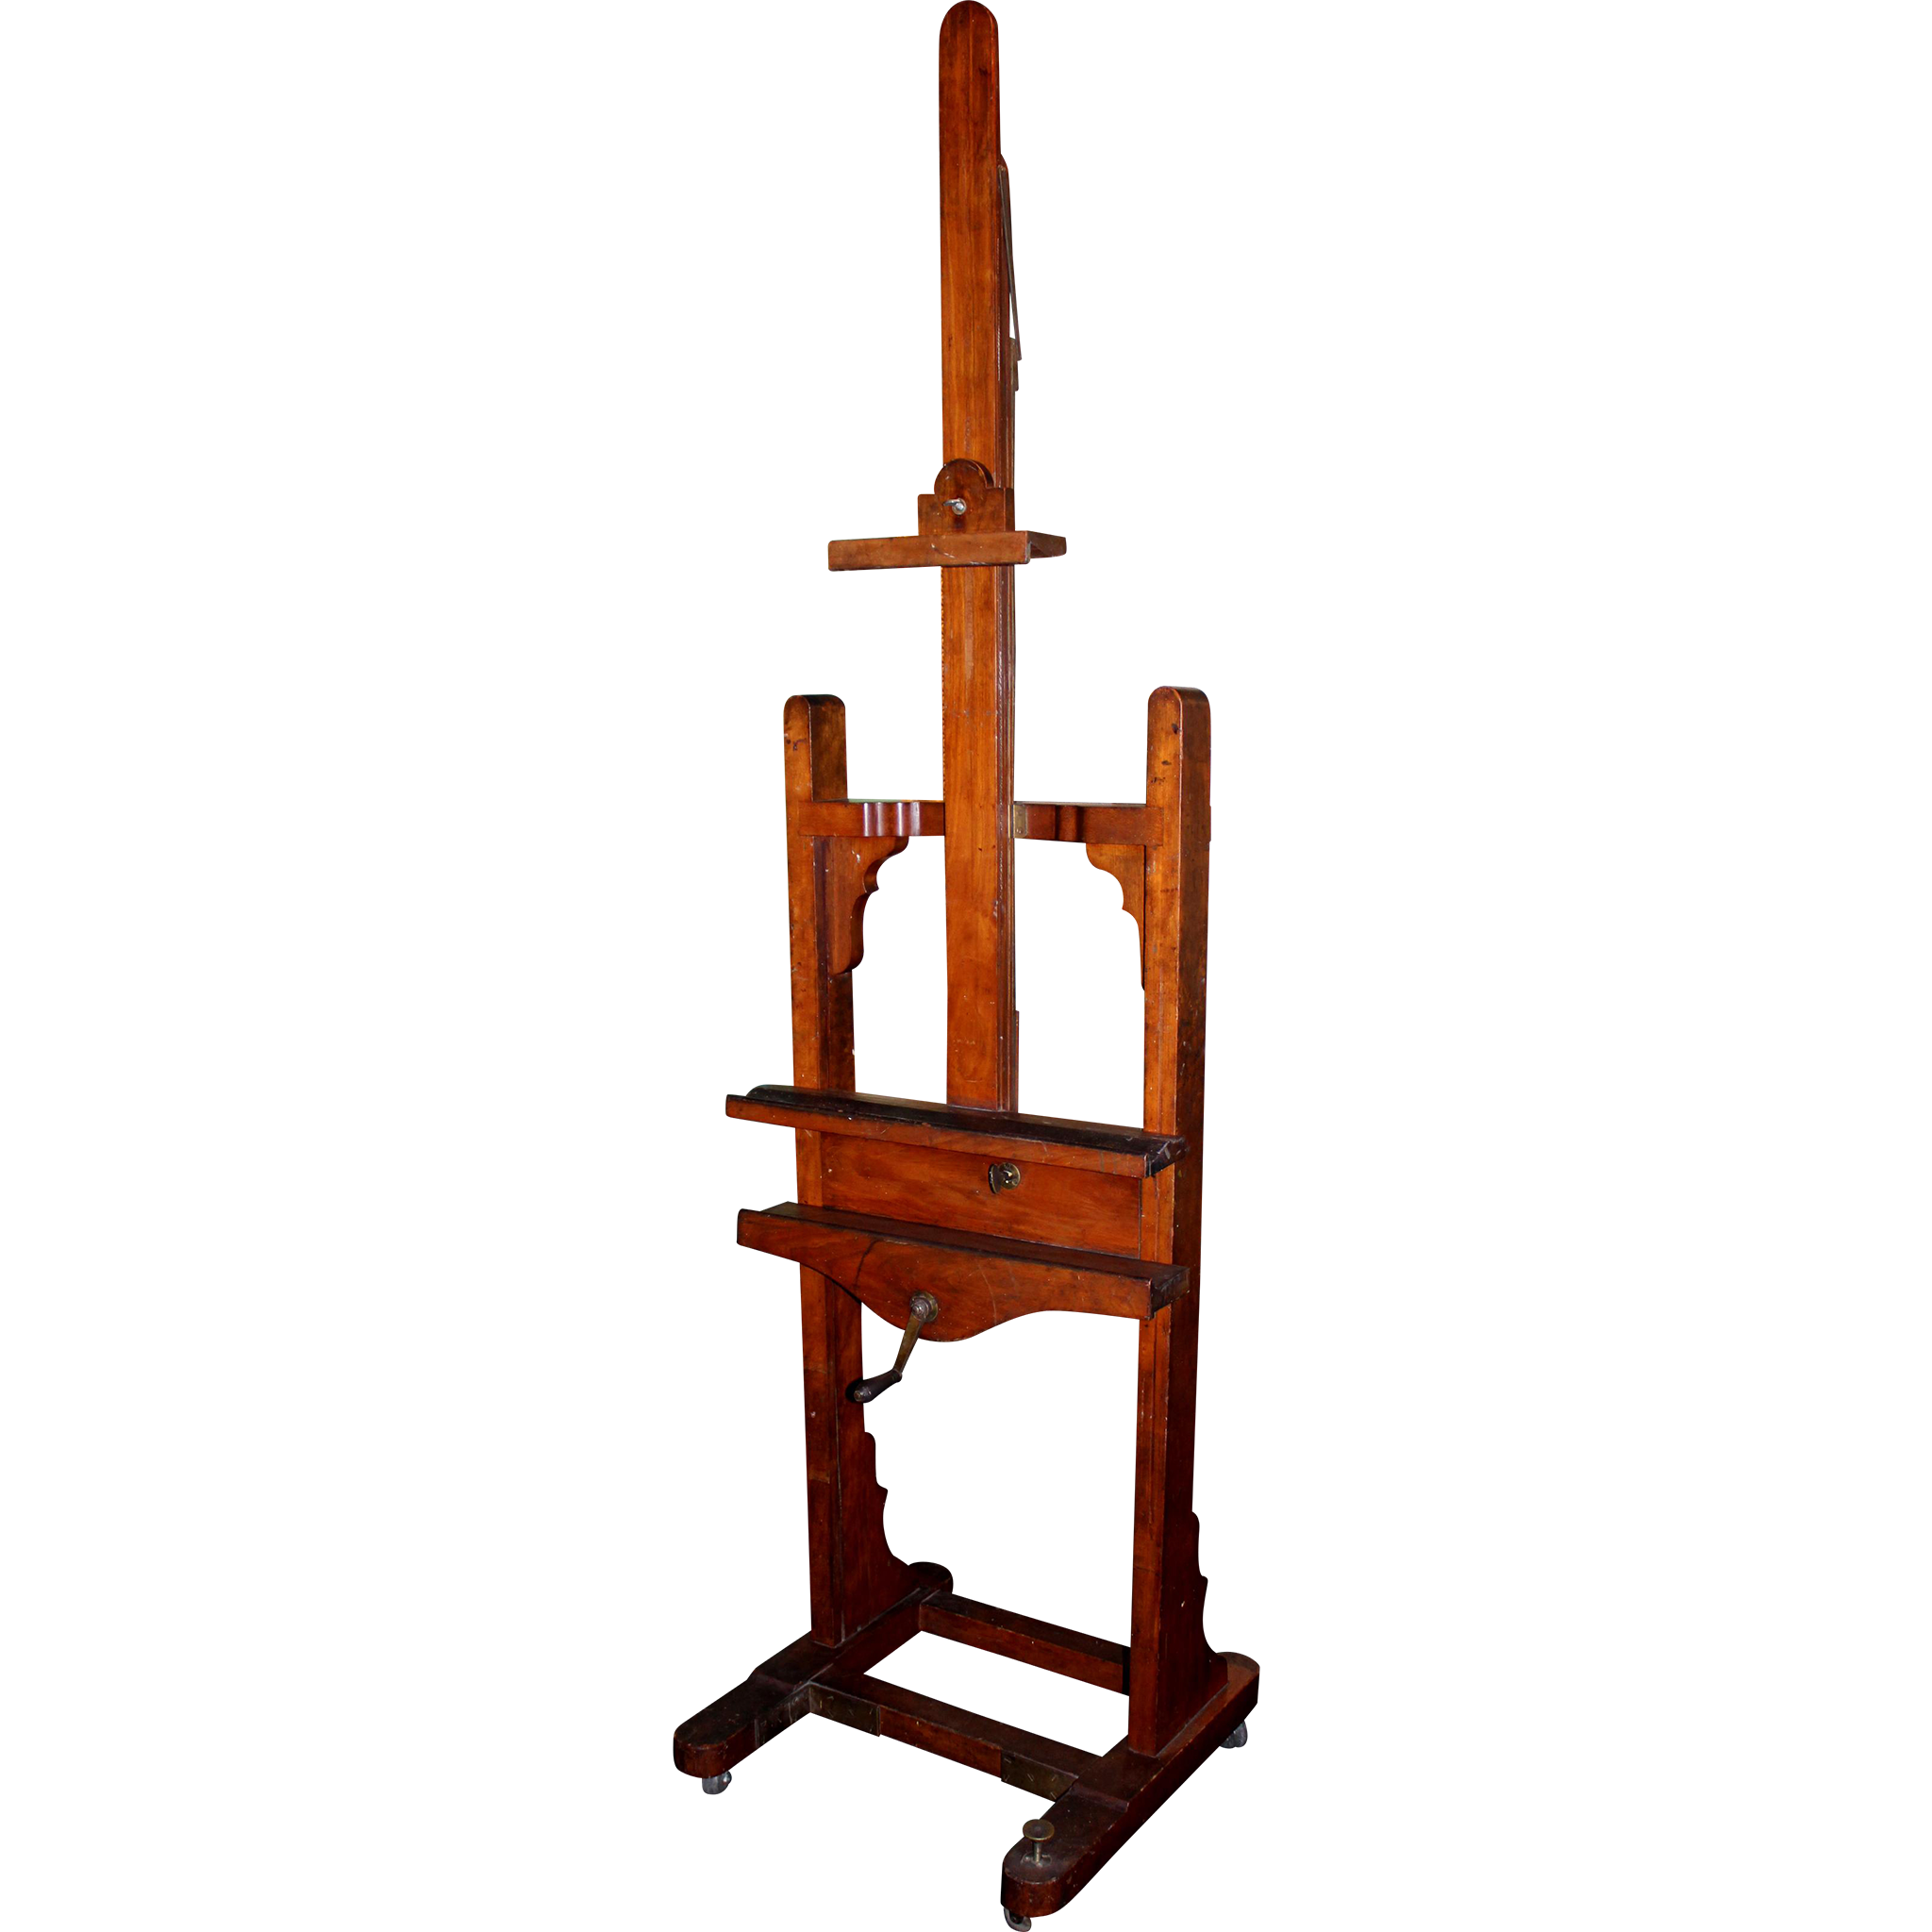 William McGregor Paxton's Artist Easel in Cherrywood from Fenway Studios, Boston